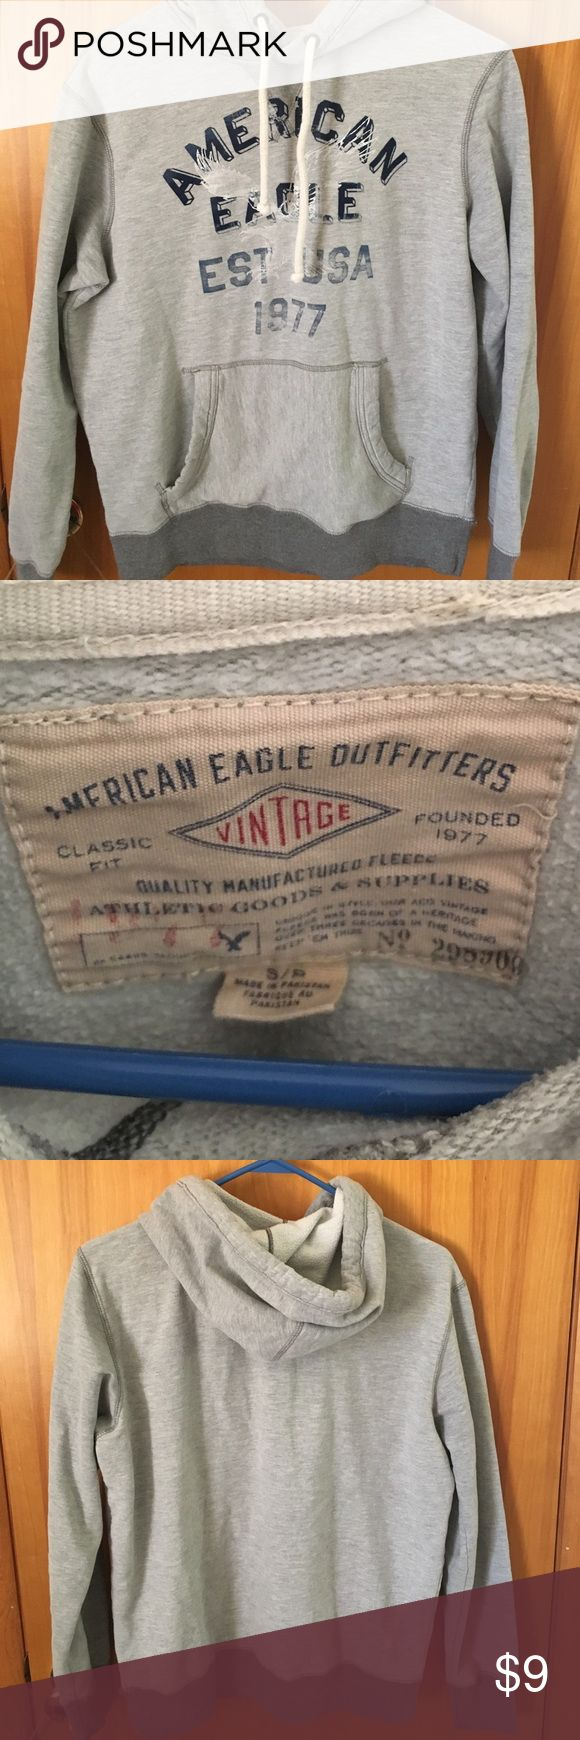 ✨American Eagle Outfitters Hoodie Small✨ Classic fit American Eagle Outfitters hoodie. Size small. Excellent condition. Ships within 24 hours, except on weekends. American Eagle Outfitters Shirts Sweatshirts & Hoodies